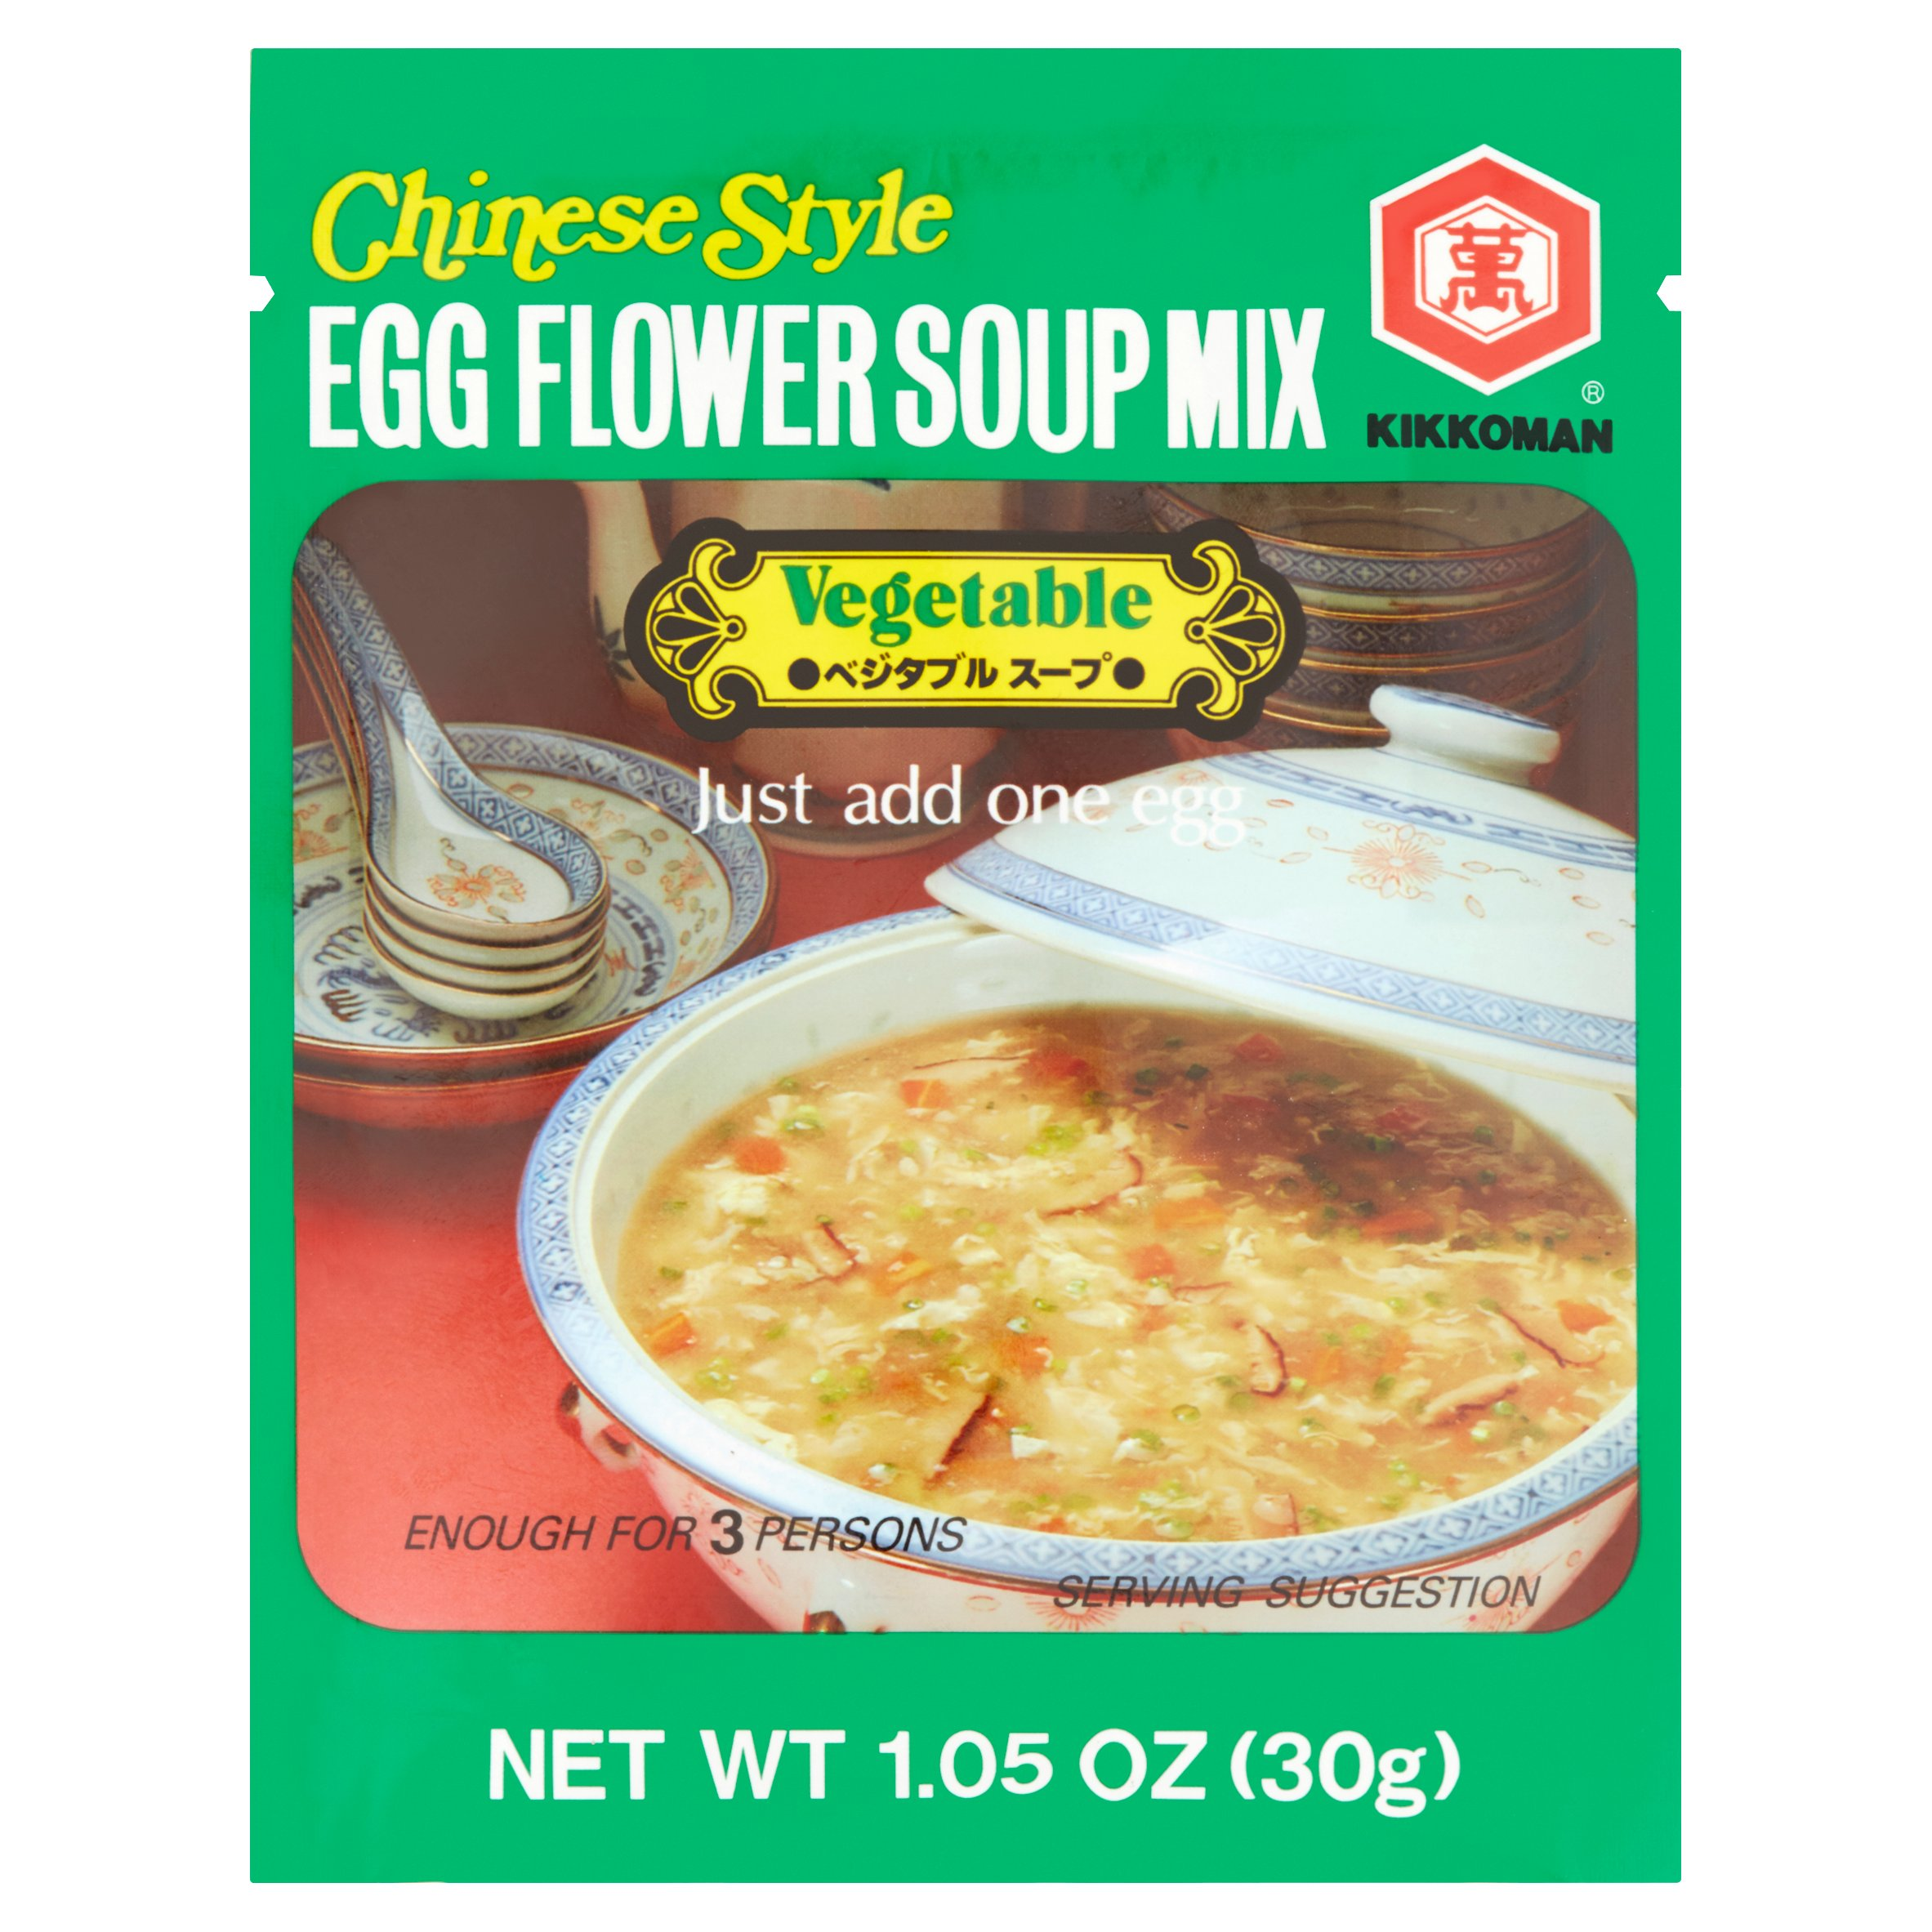 Kikkoman Chinese Style Egg Flour Mix Vegetable Soup, 1.05 oz by Kikkoman Sales Usa, Inc.